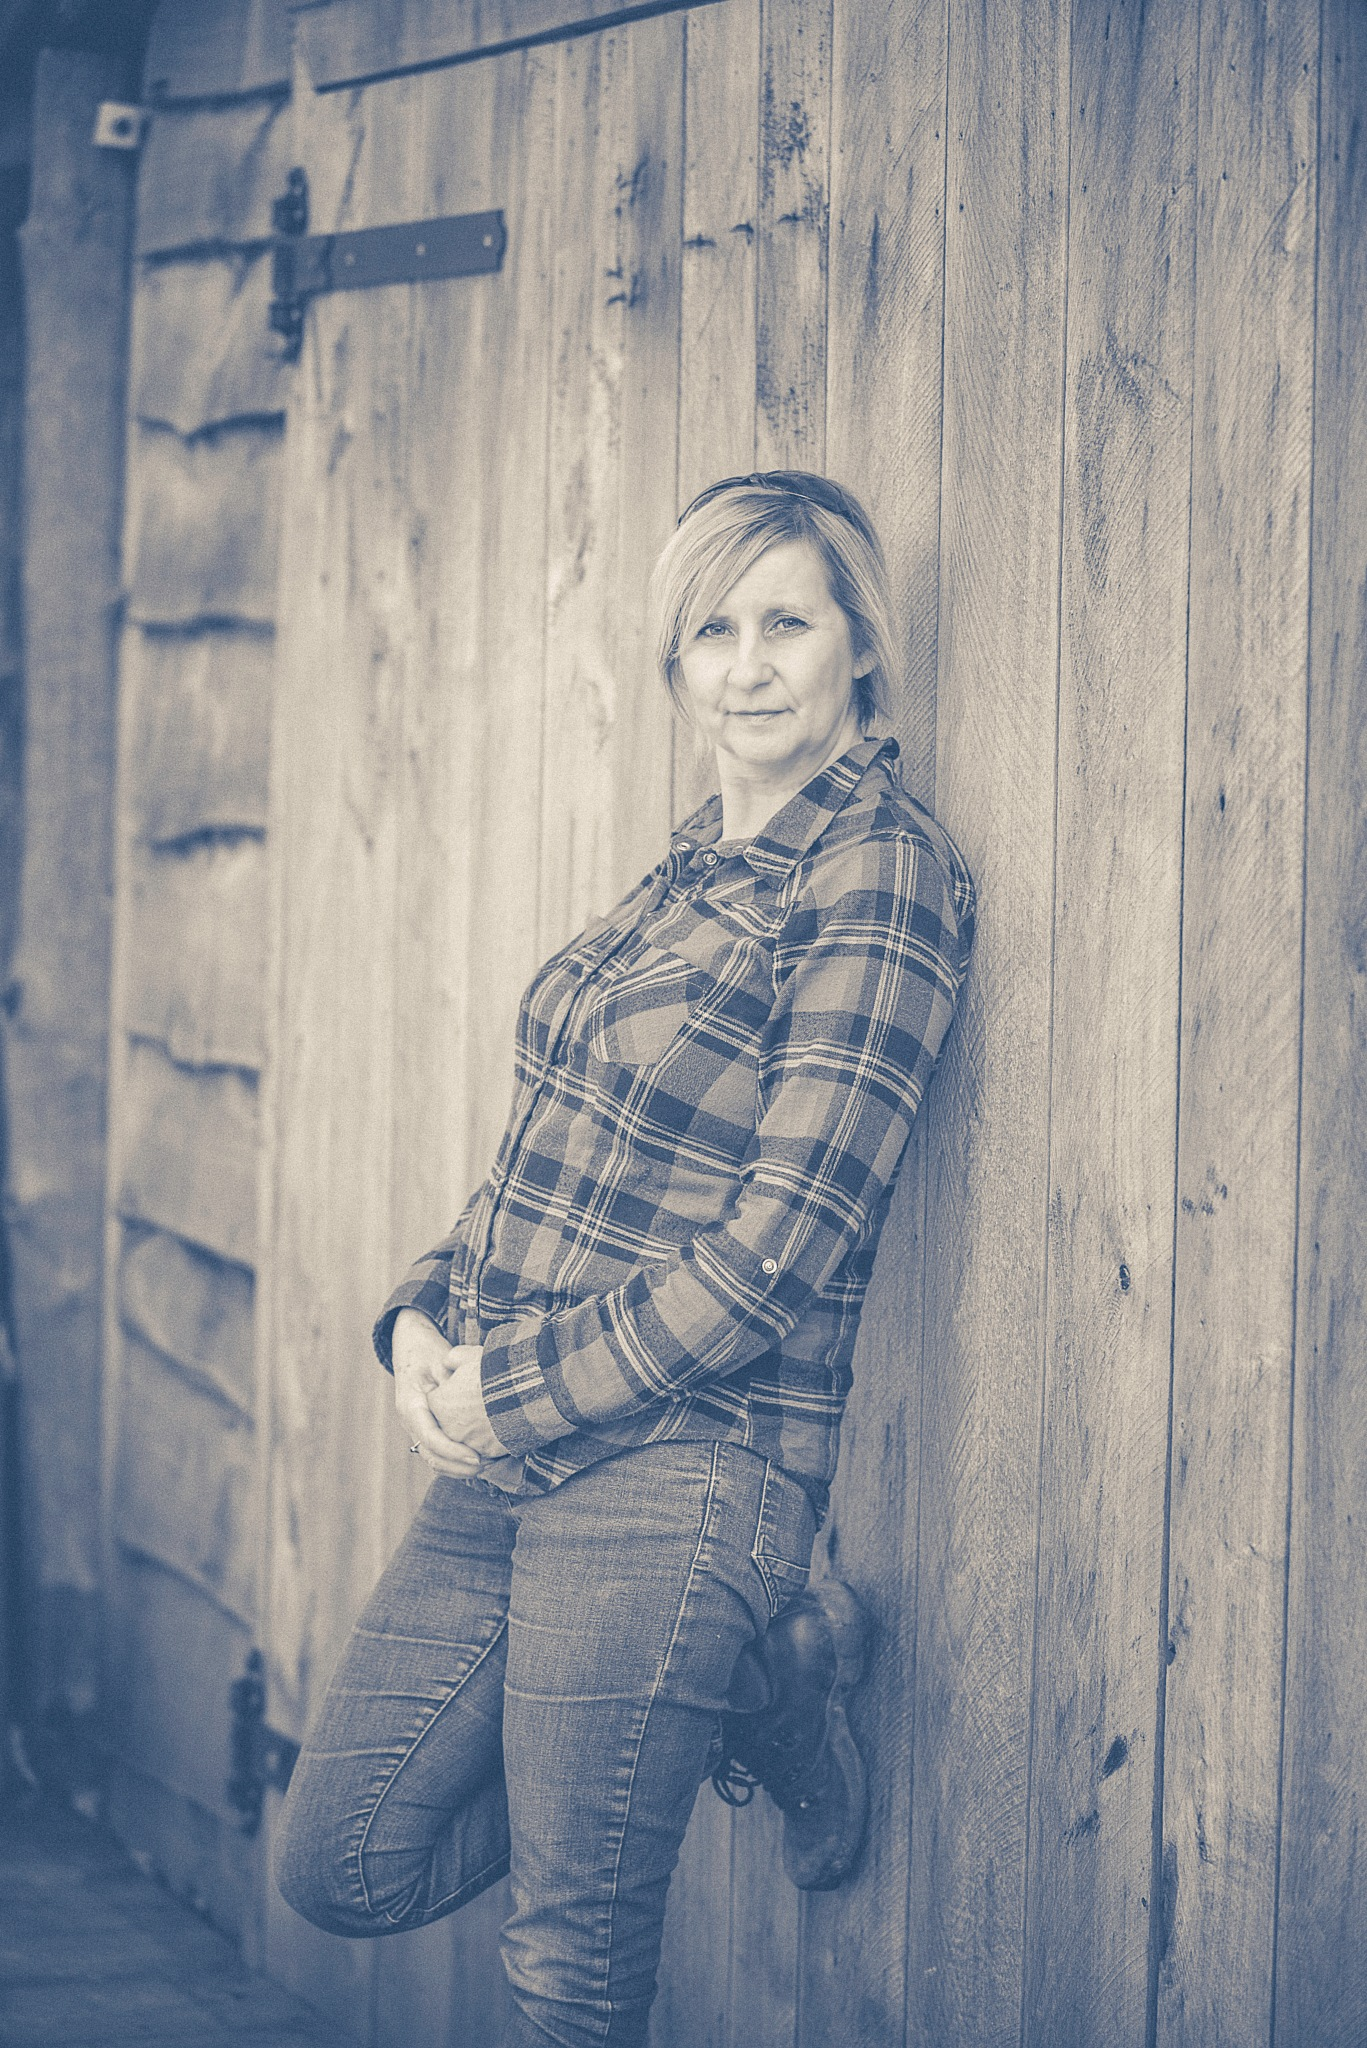 Rustic portrait by MarkGray